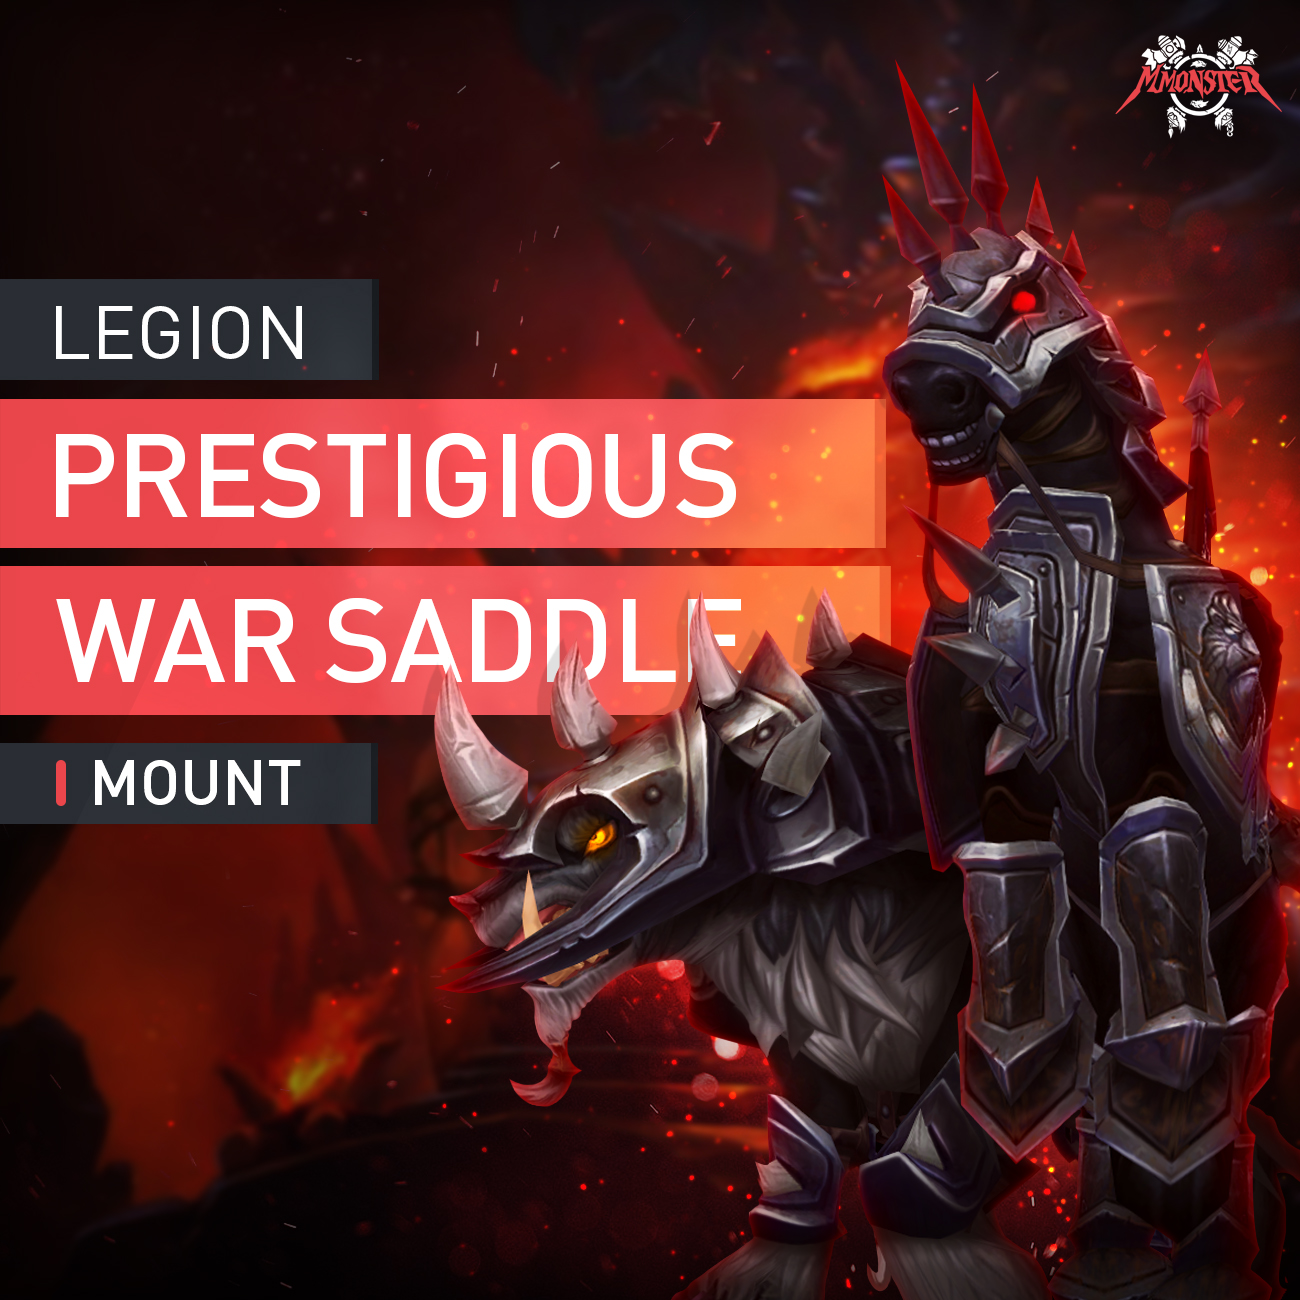 Prestigious War Mount